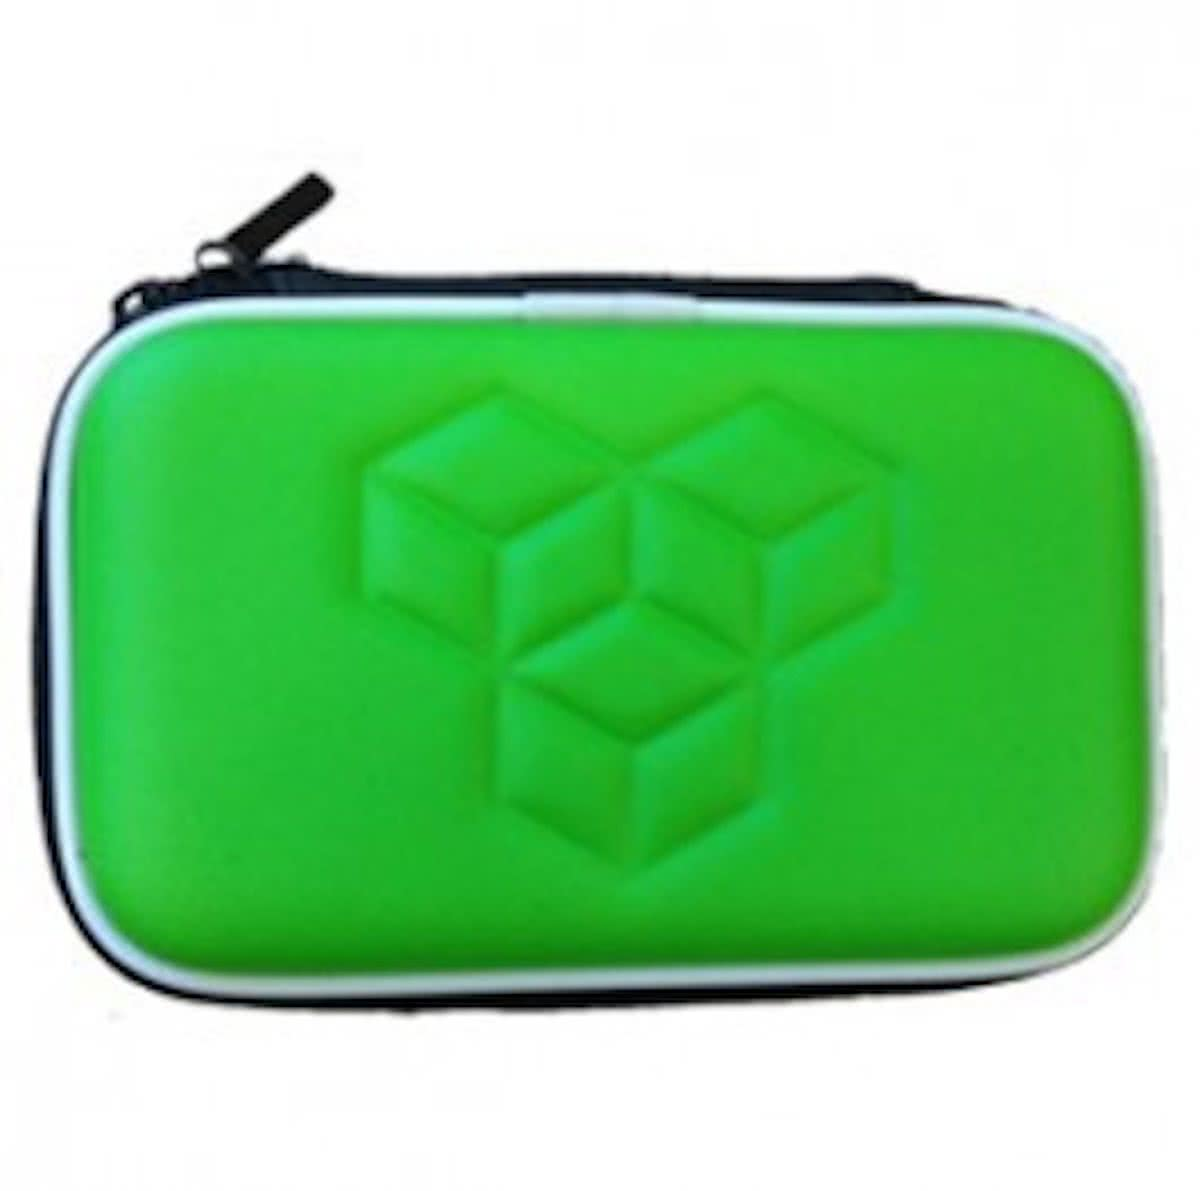 Memoryfoam case groen voor DS, DSi, DS Lite, 3DS of New 3DS